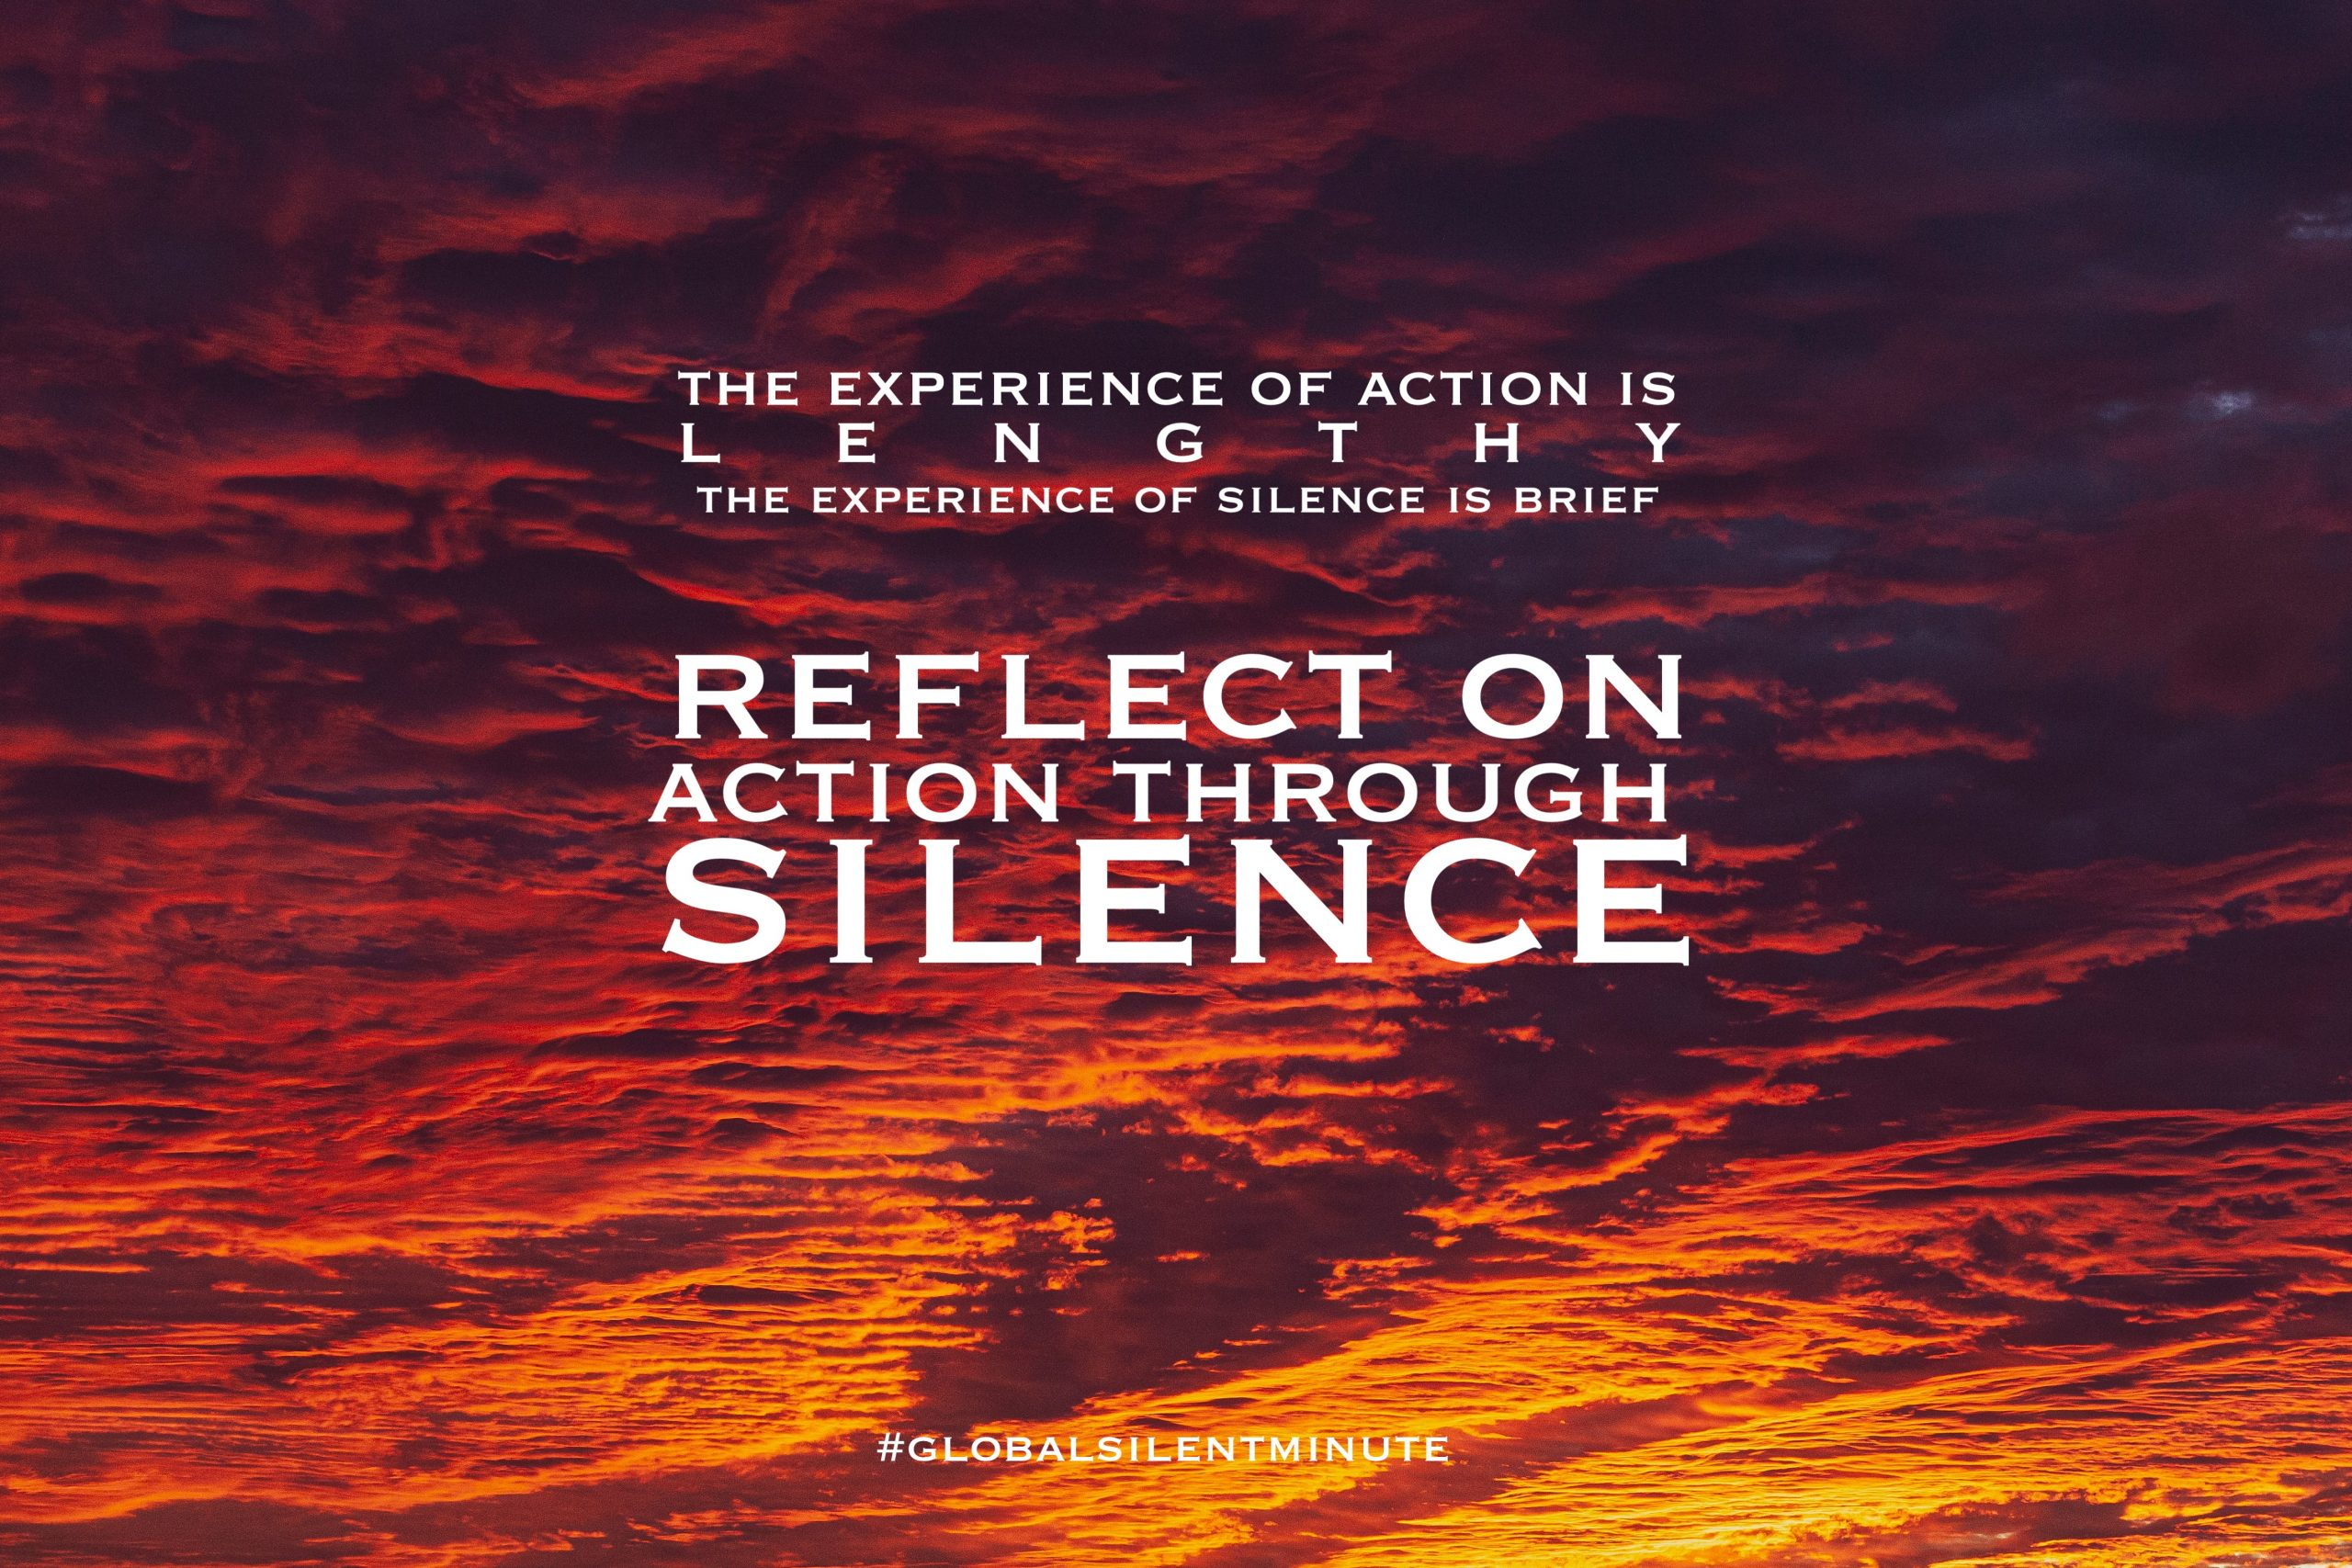 11.Reflect on Action through Silence